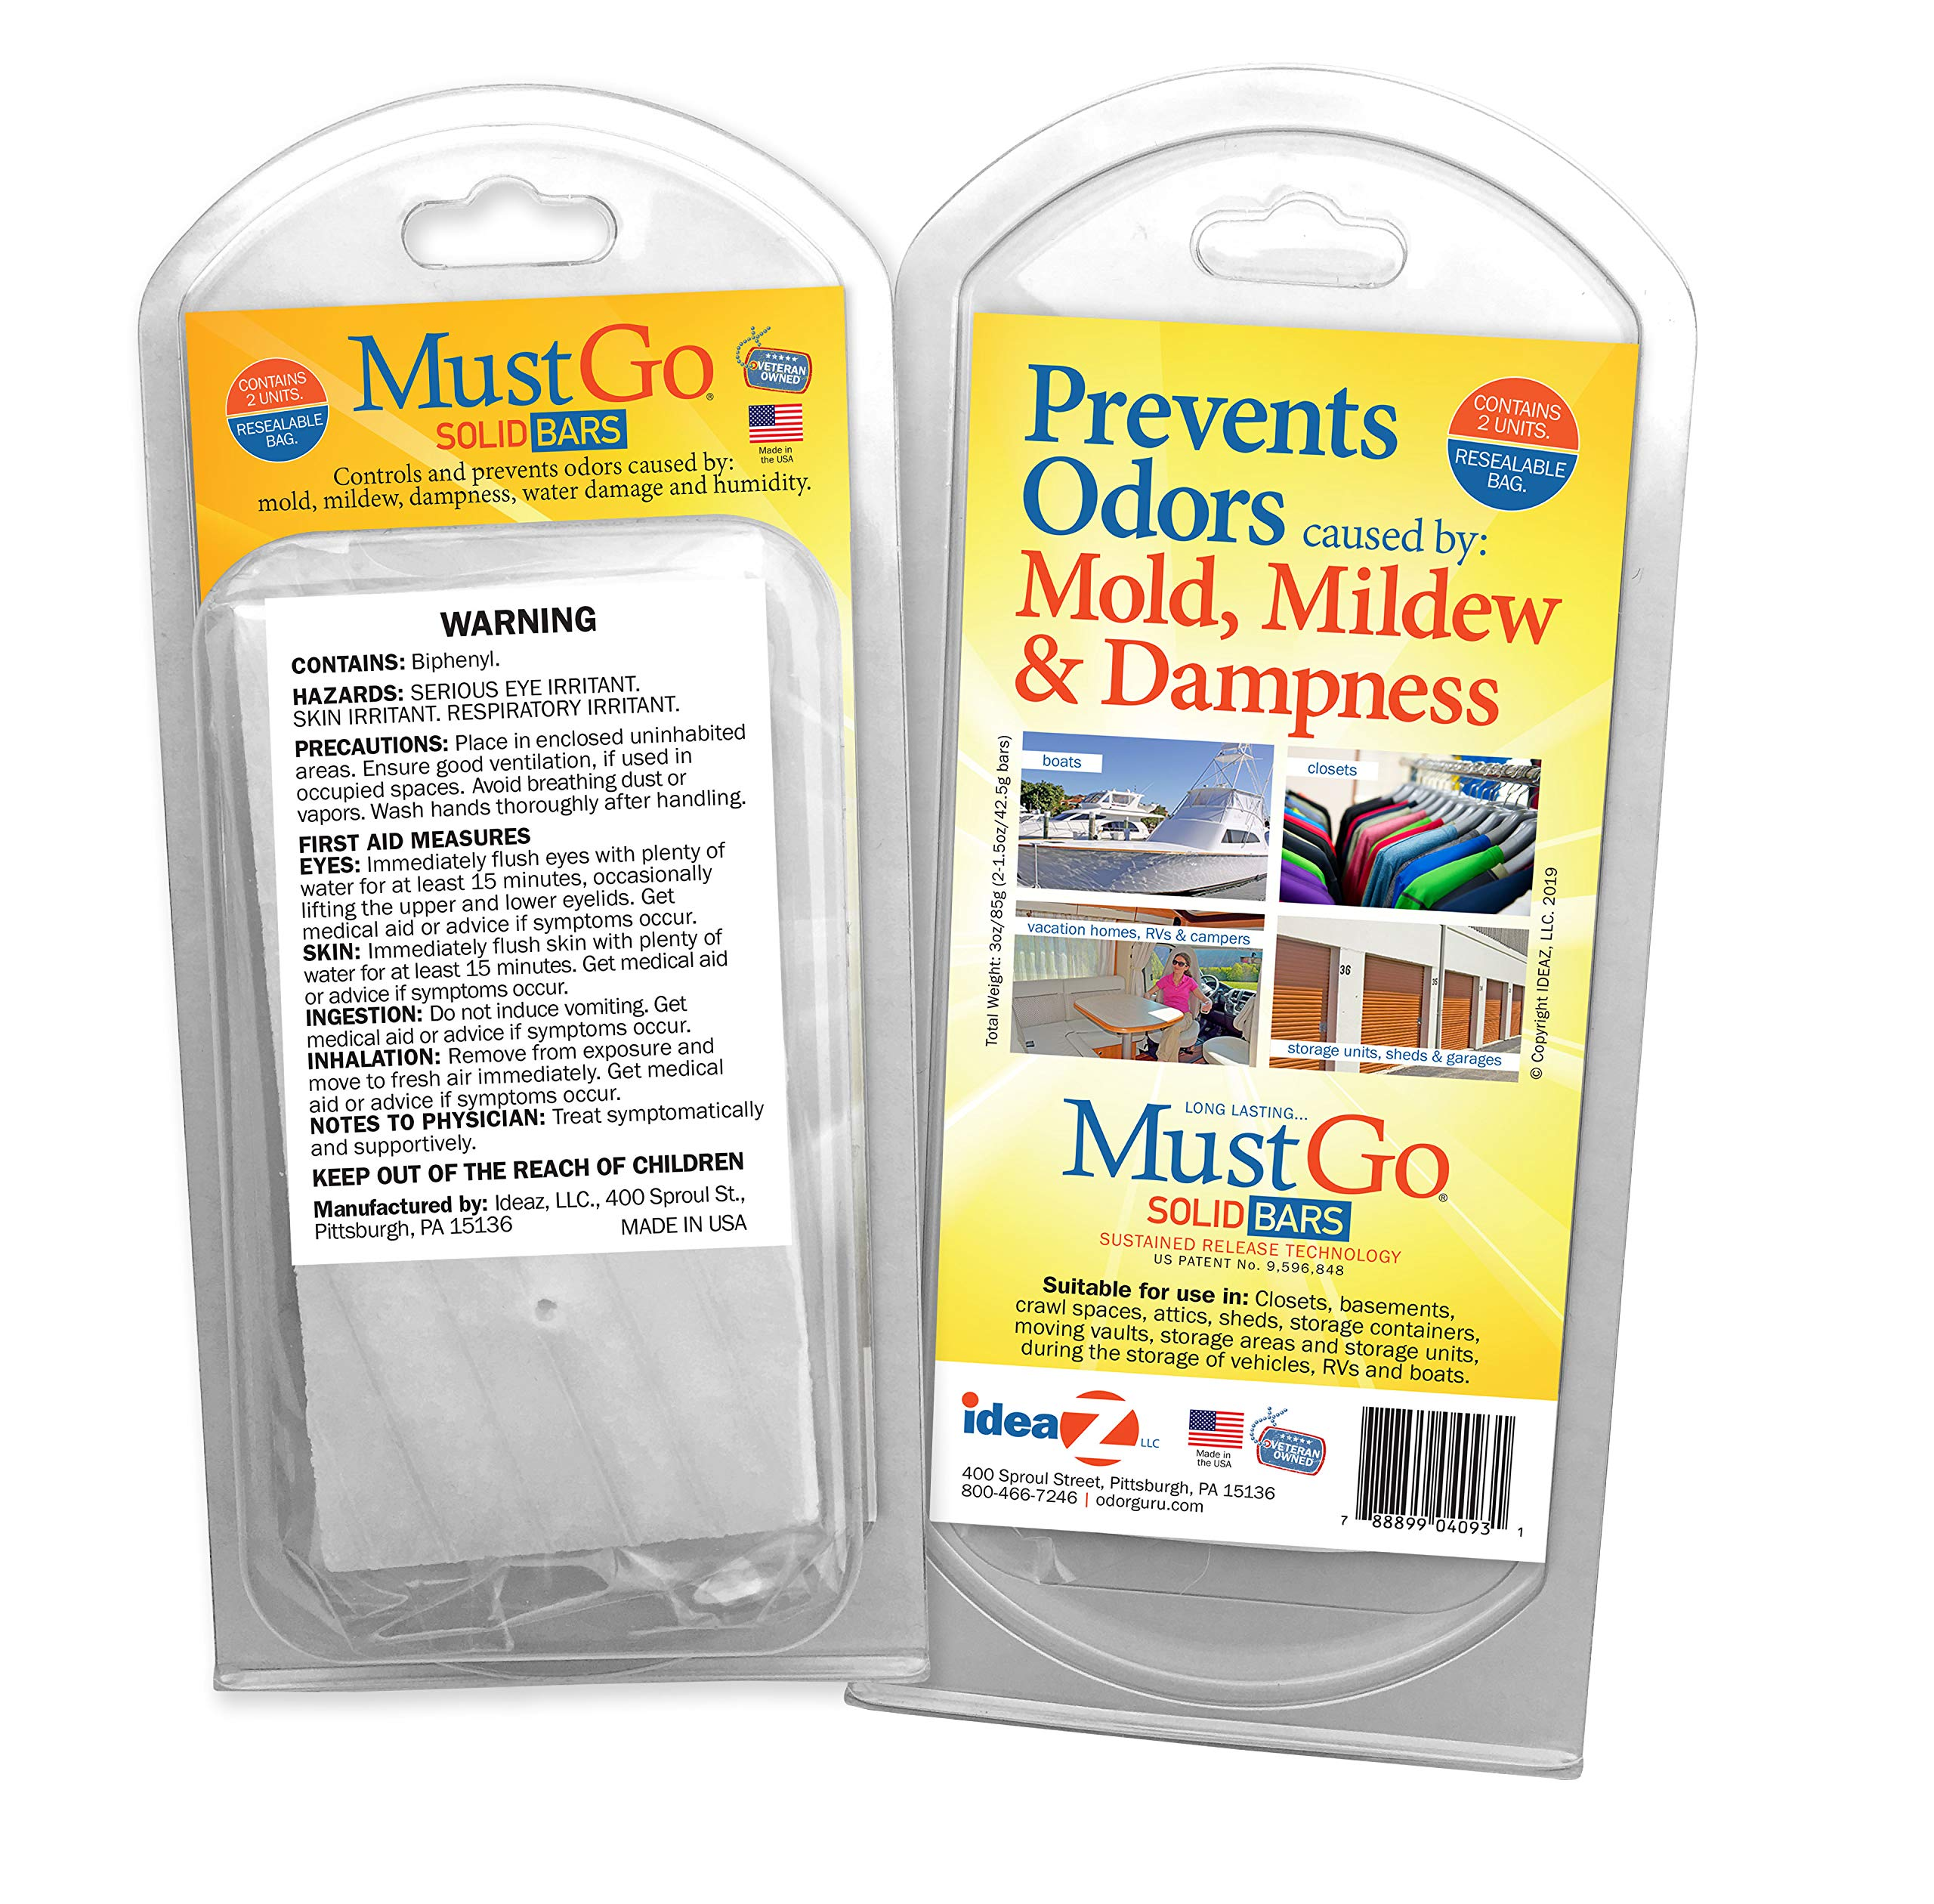 MustGo Solid Bars - Controls and Prevents Damp, Musty, Mildew Odors in Closets, Basements, Attics and Storage Units - Unscented (2 Pack)